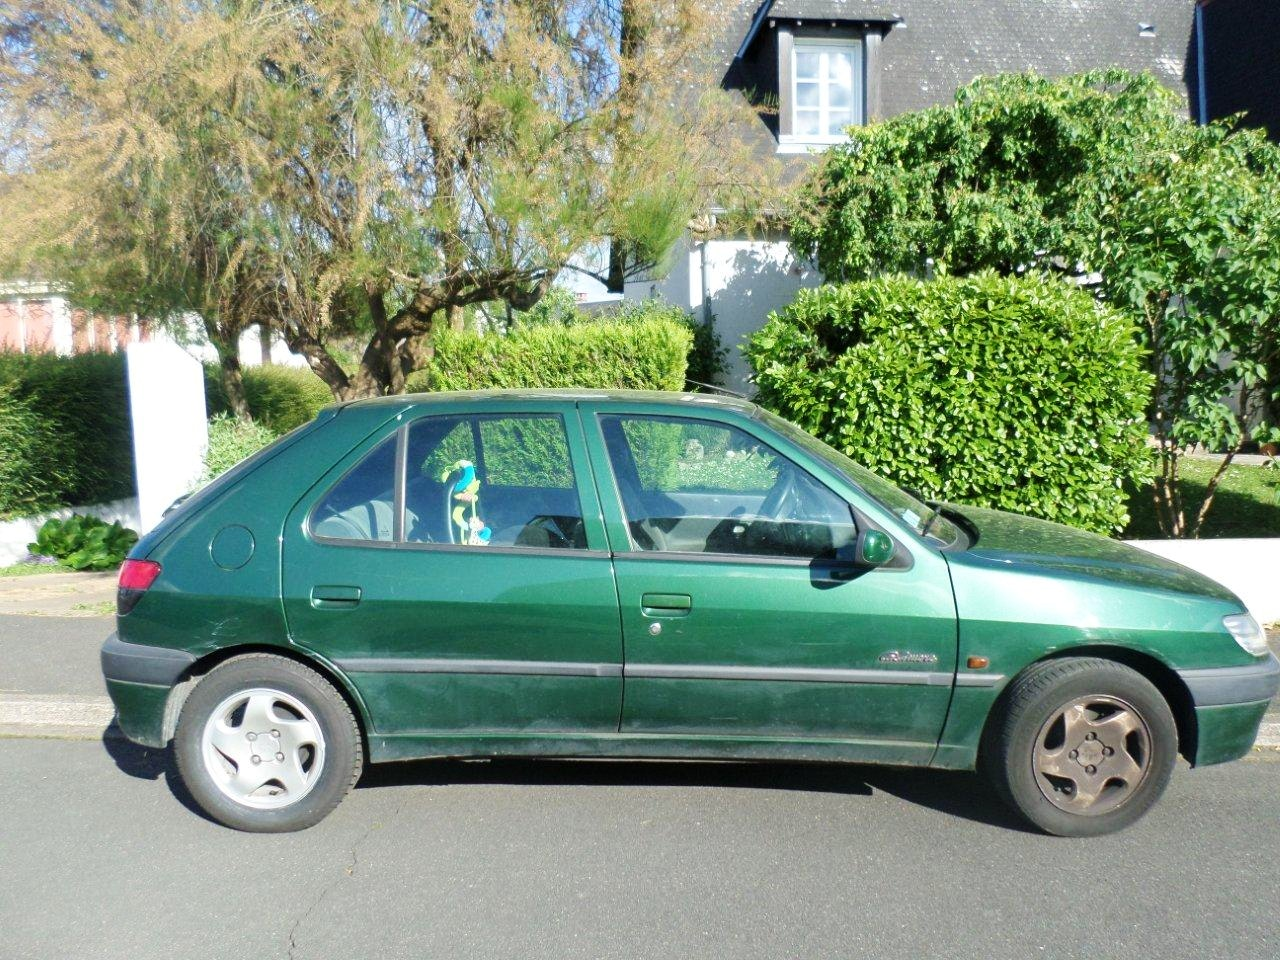 Peugeot 306, 1999, Essence, automatique